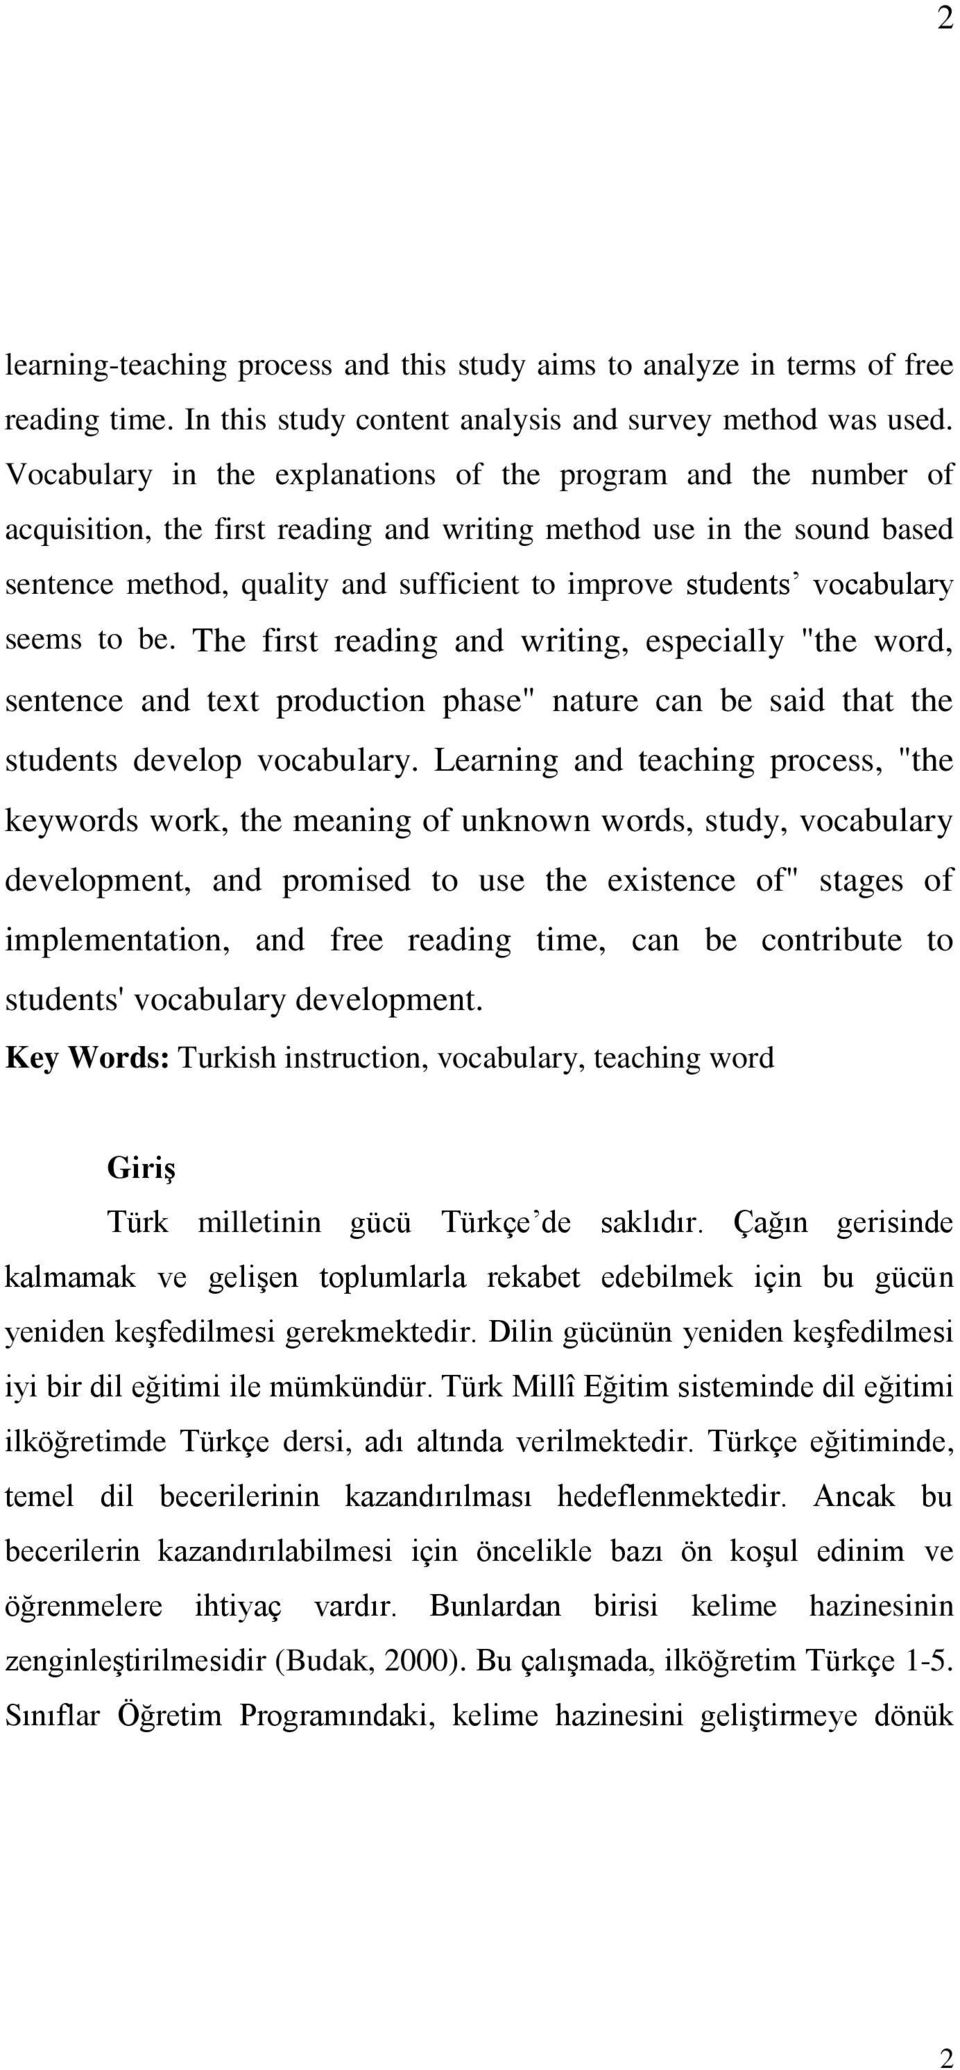 "vocabulary seems to be. The first reading and writing, especially ""the word, sentence and text production phase"" nature can be said that the students develop vocabulary."